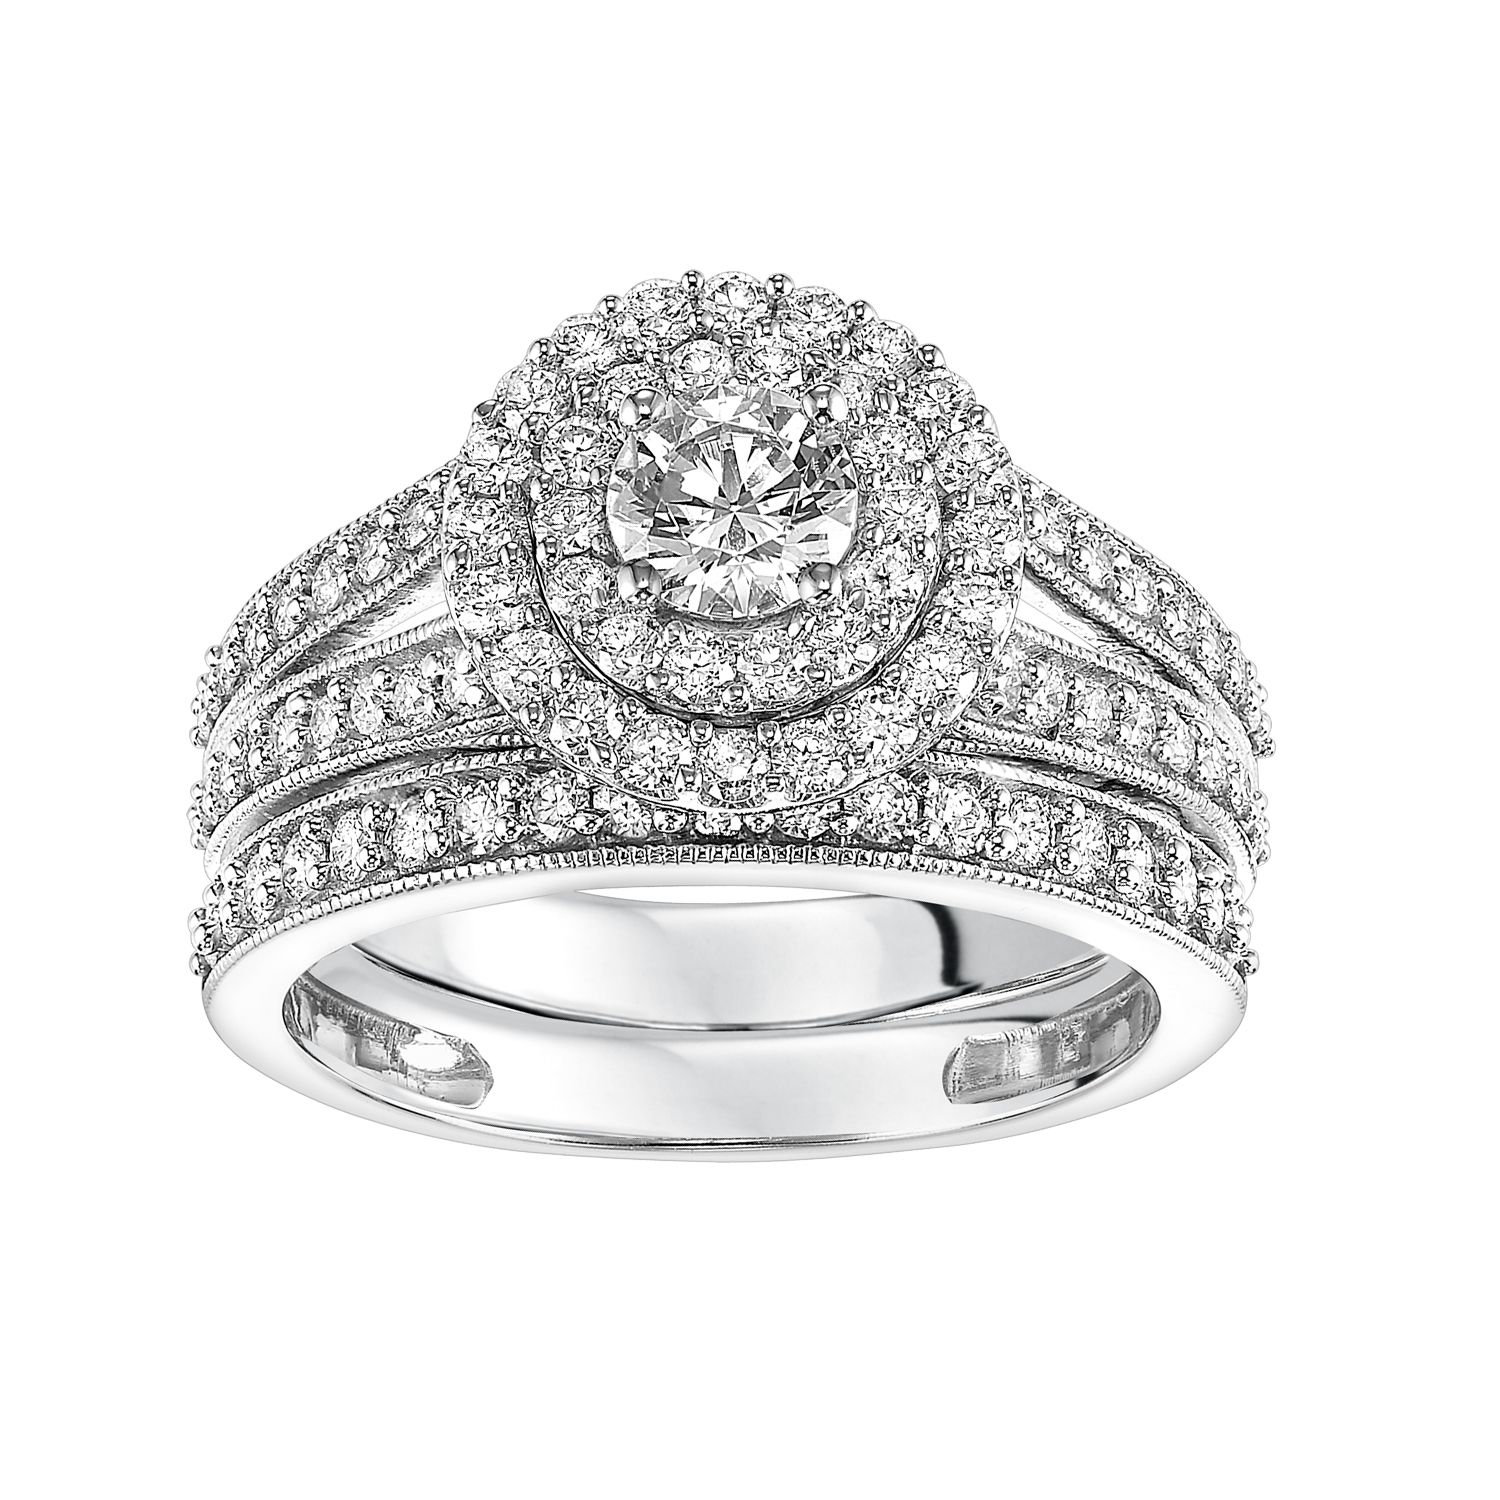 Attrayant Simply Vera Vera Wang 14k White Gold 1 1/2 Carat T.W. Certified Diamond  Double Halo Engagement Ring Set